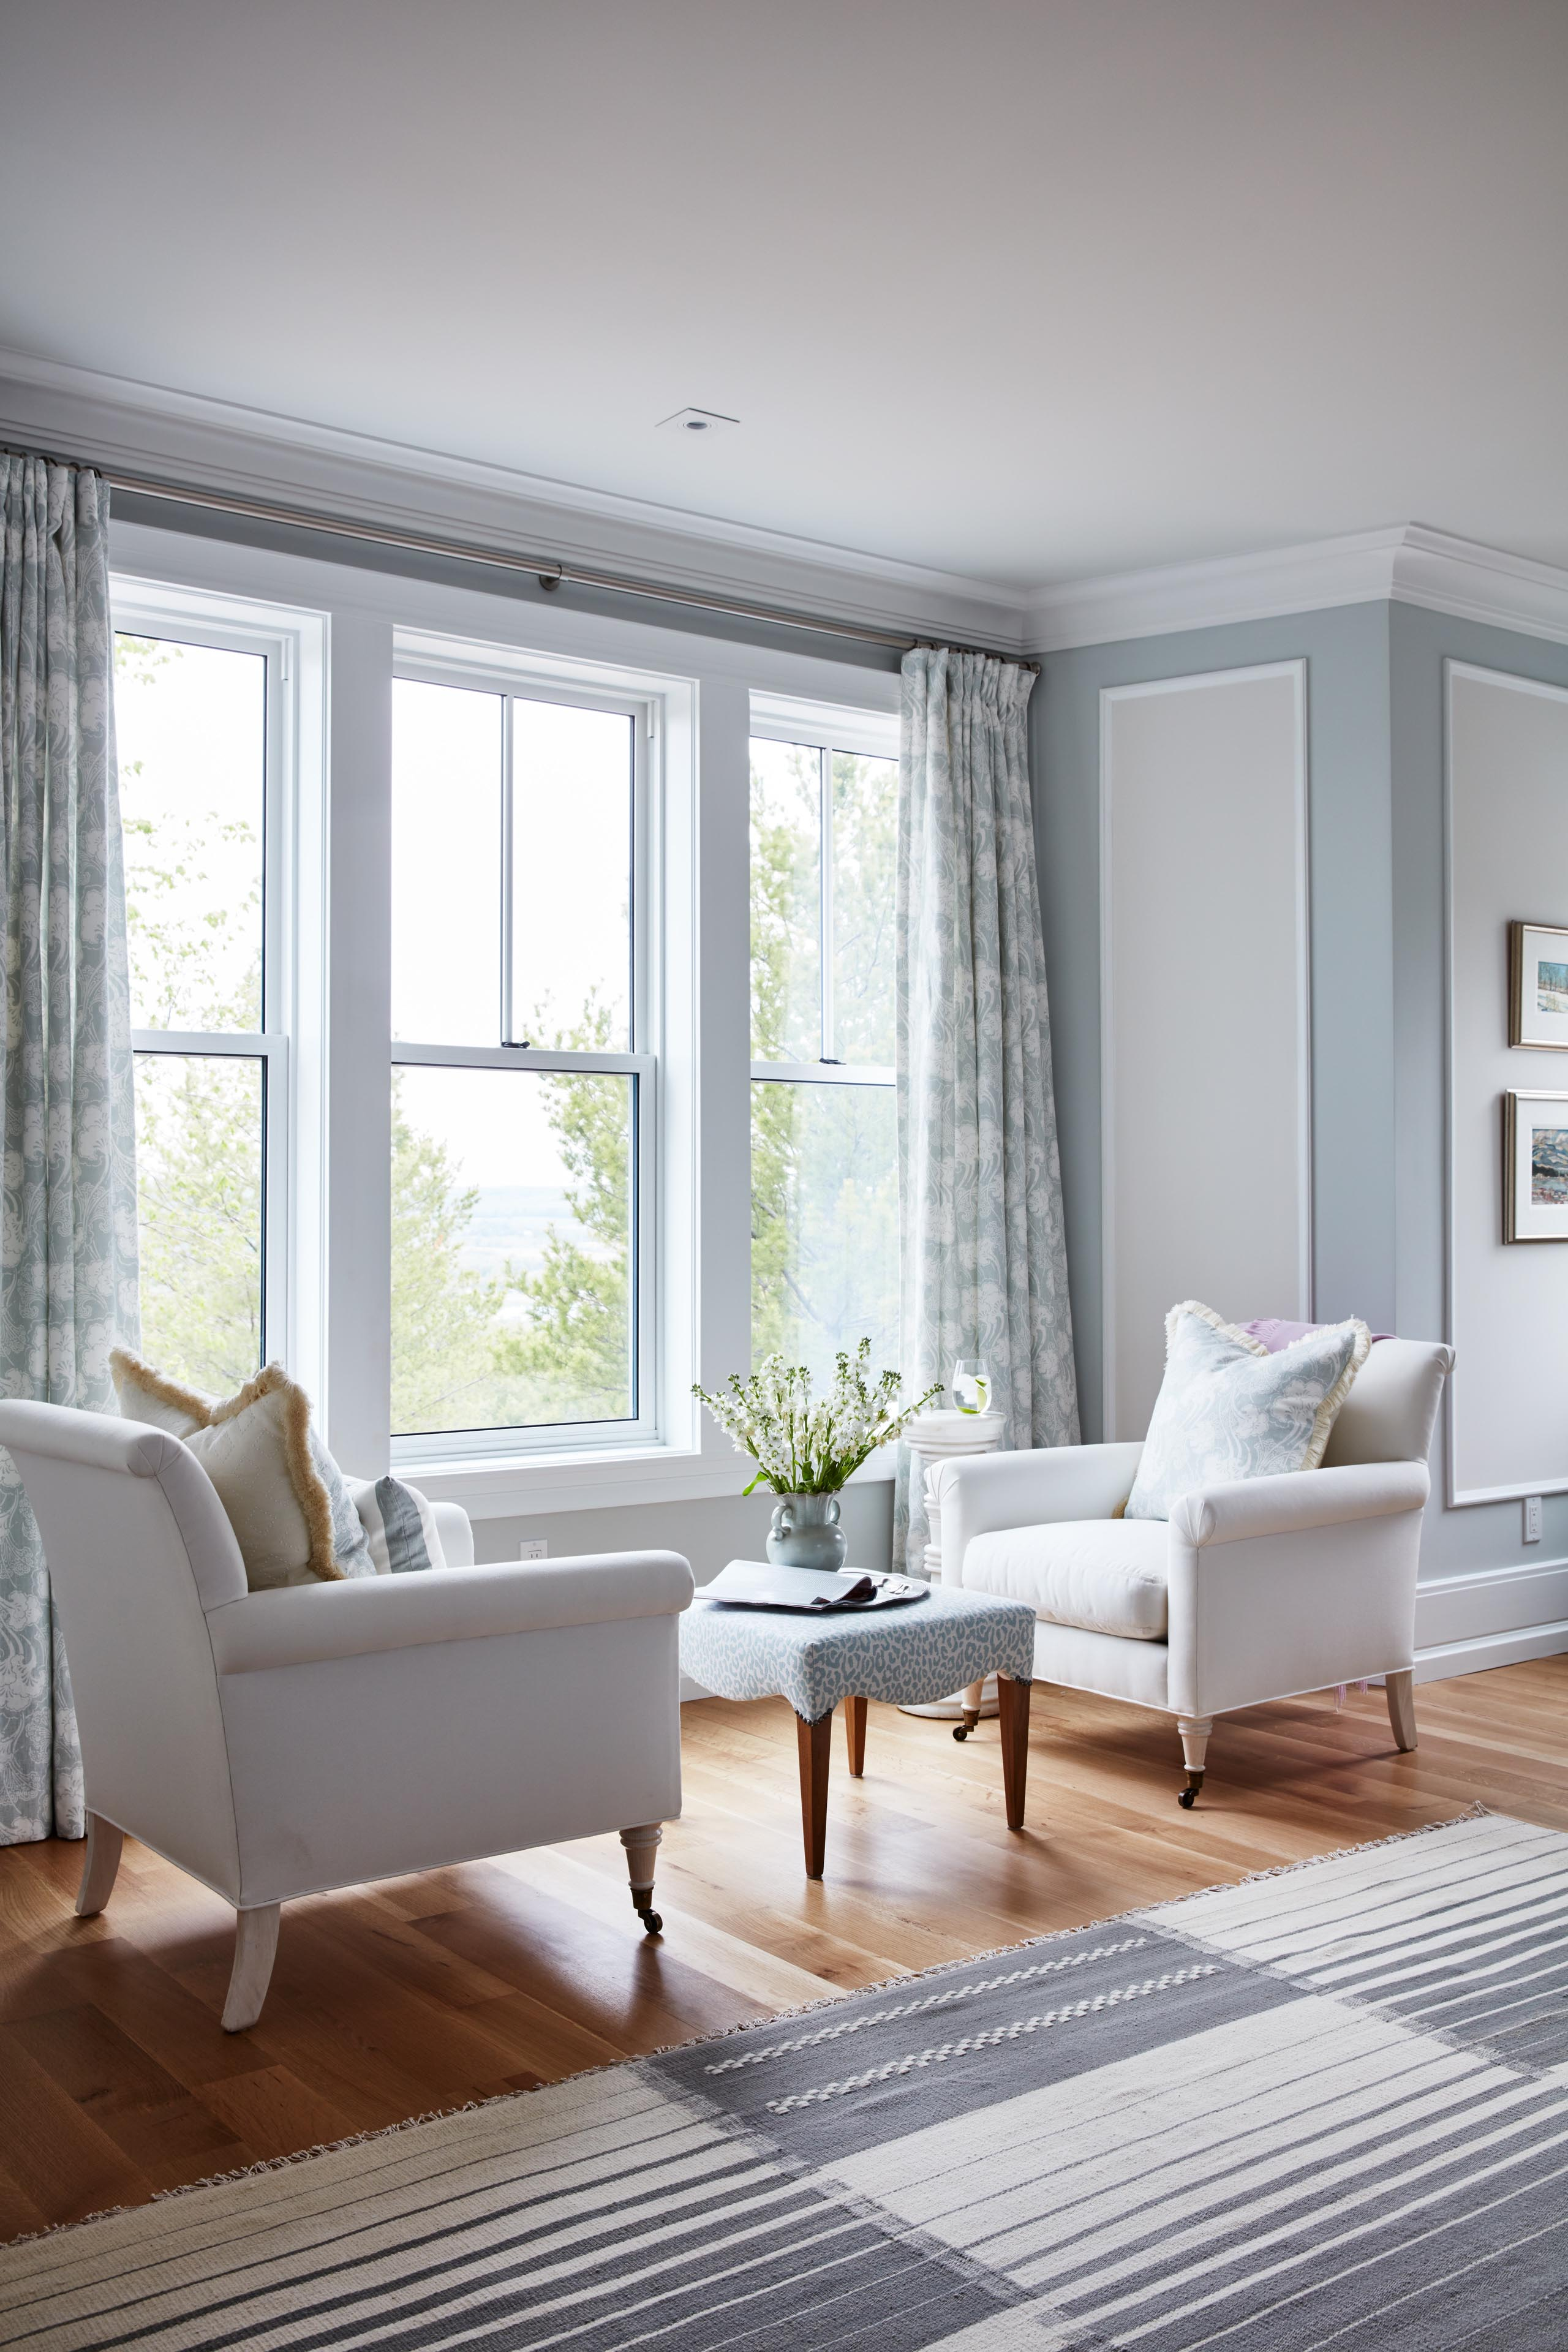 Beautiful seating area with armchairs in front of window in blue master bedroom designed by Sarah Richardson